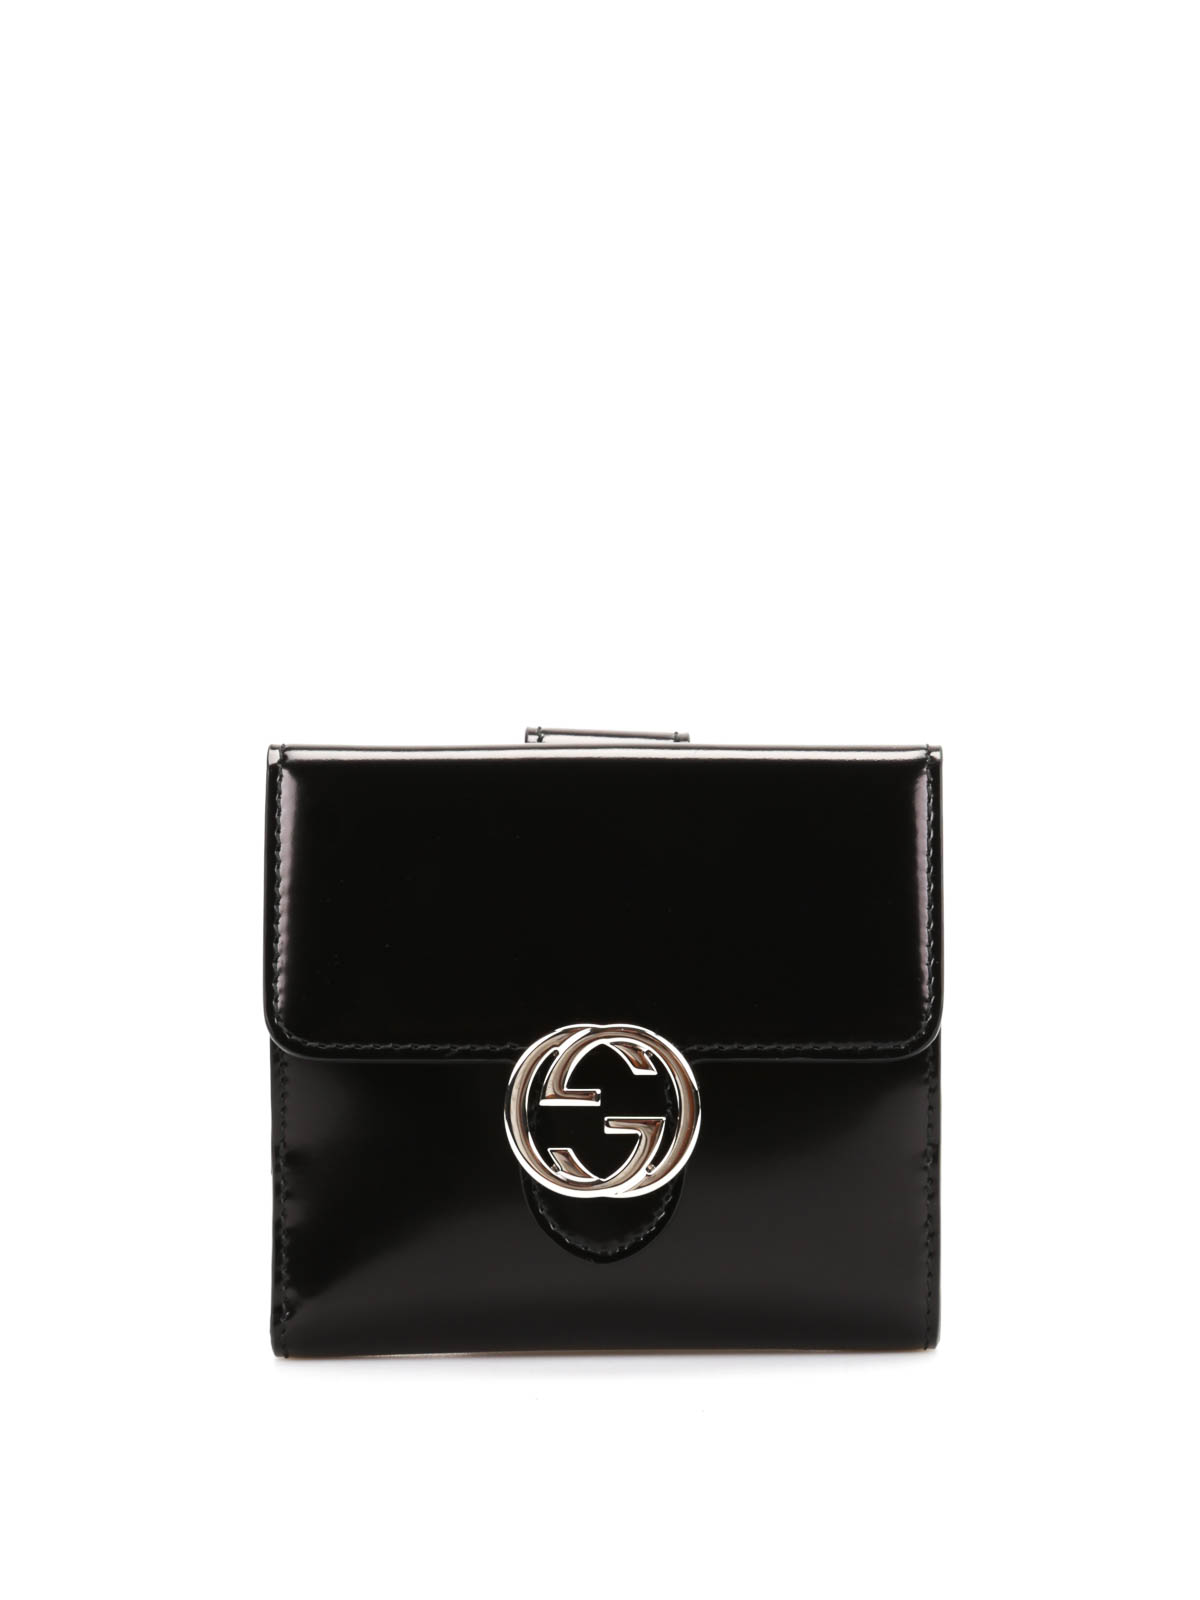 160d43ee45c2 Gucci - Gucci icon french flap wallet - wallets   purses - 369676 ...